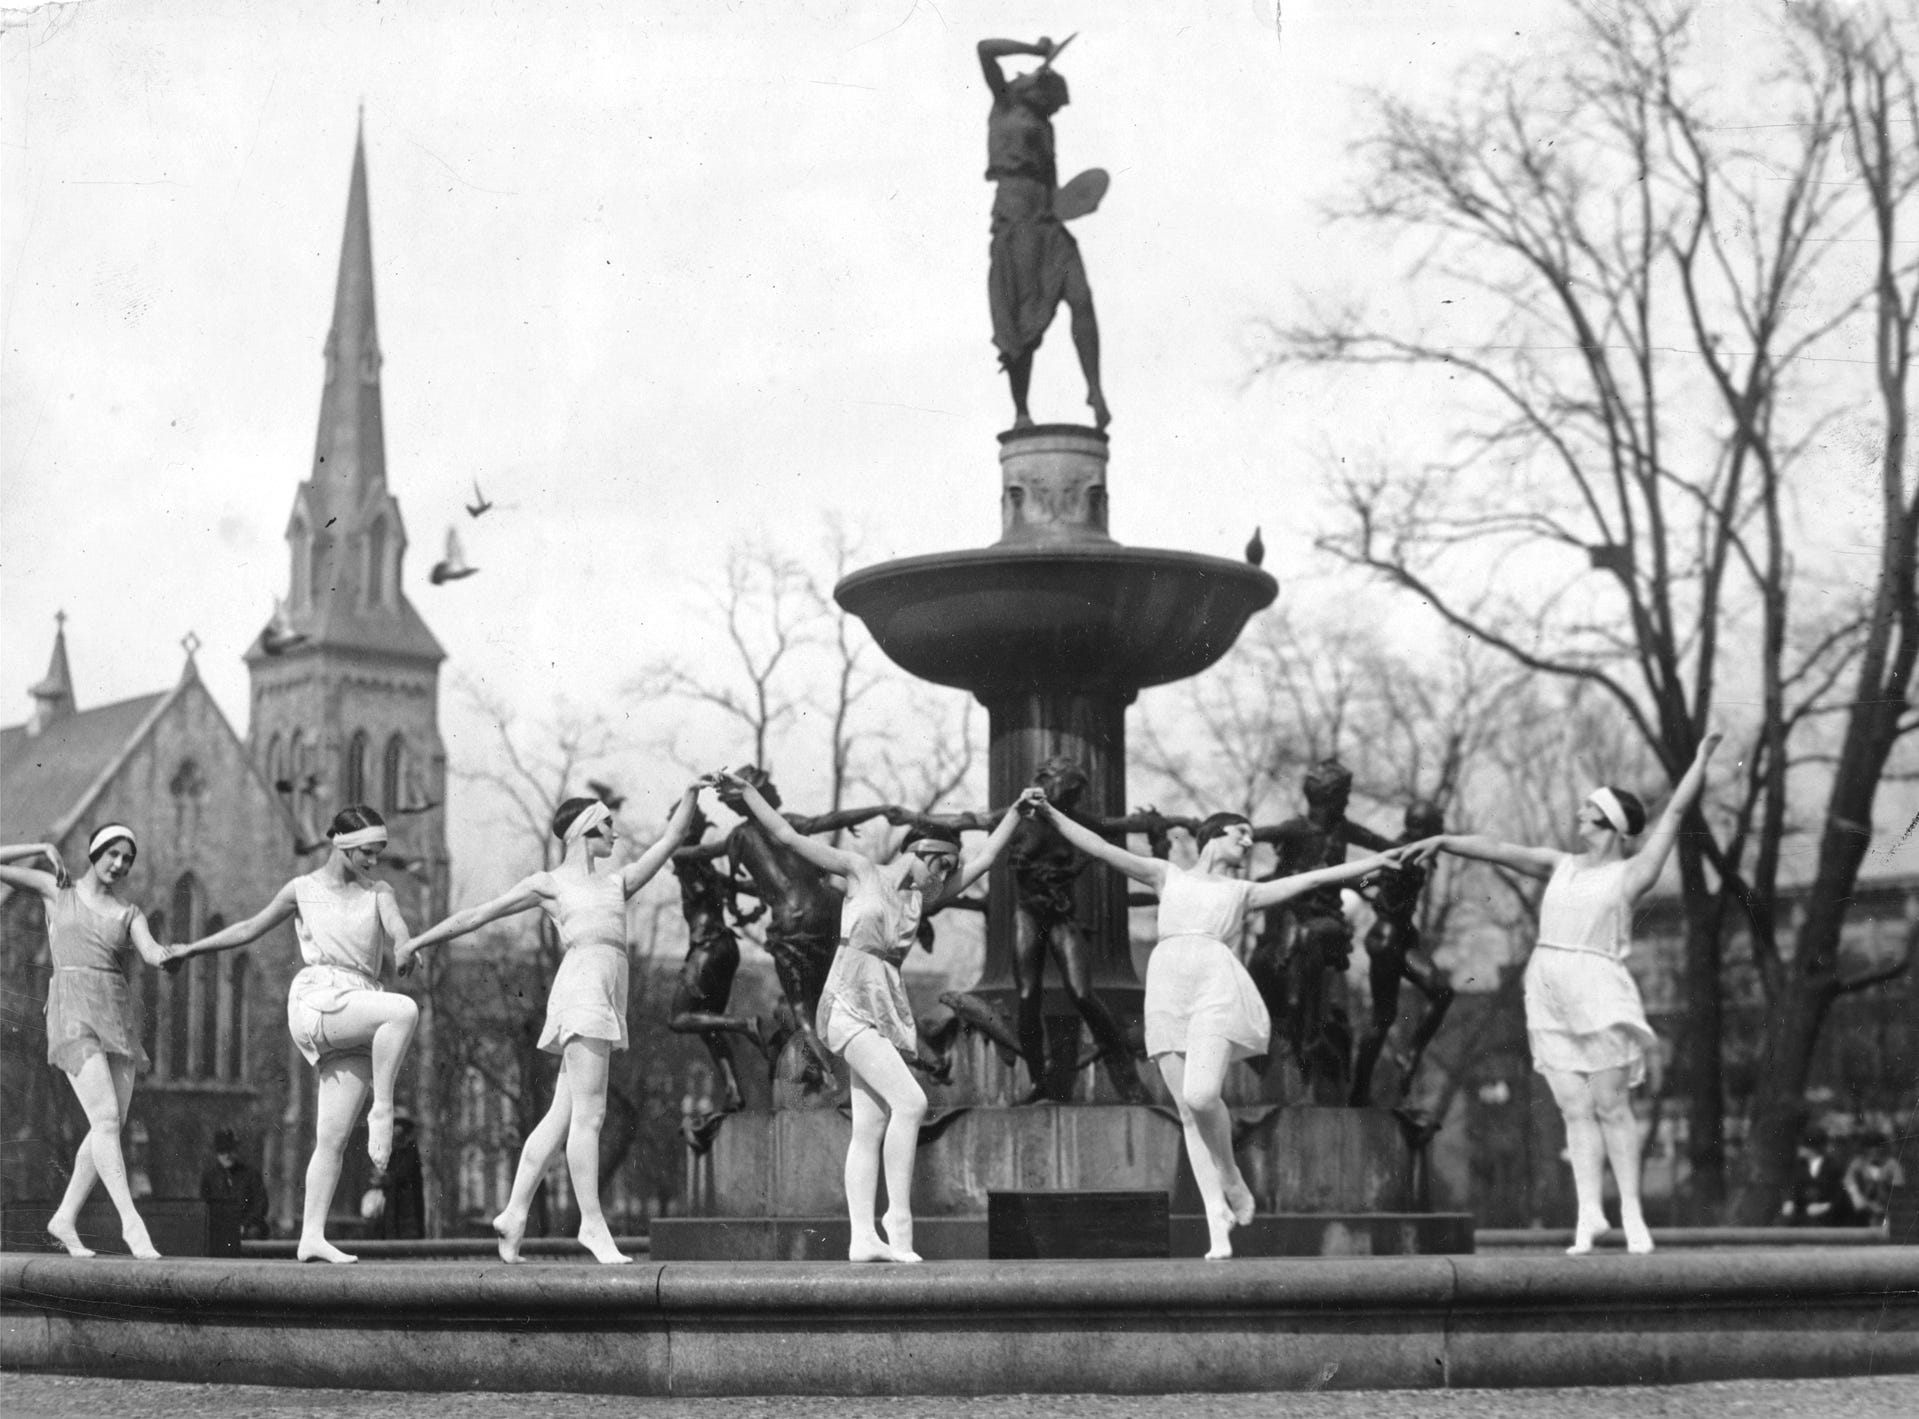 Young women did interpretive dancing around the Depew Memorial Fountain in University Park on April 21, 1926, marking the 10th anniversary of the fountain. Gardeners in the park dropped their trowels and dozens of heads popped into view in windows at the north side of the old Federal Building to observe. The dancers were members of the Albertina Rasch ballet appearing at Keith's Theater that week.